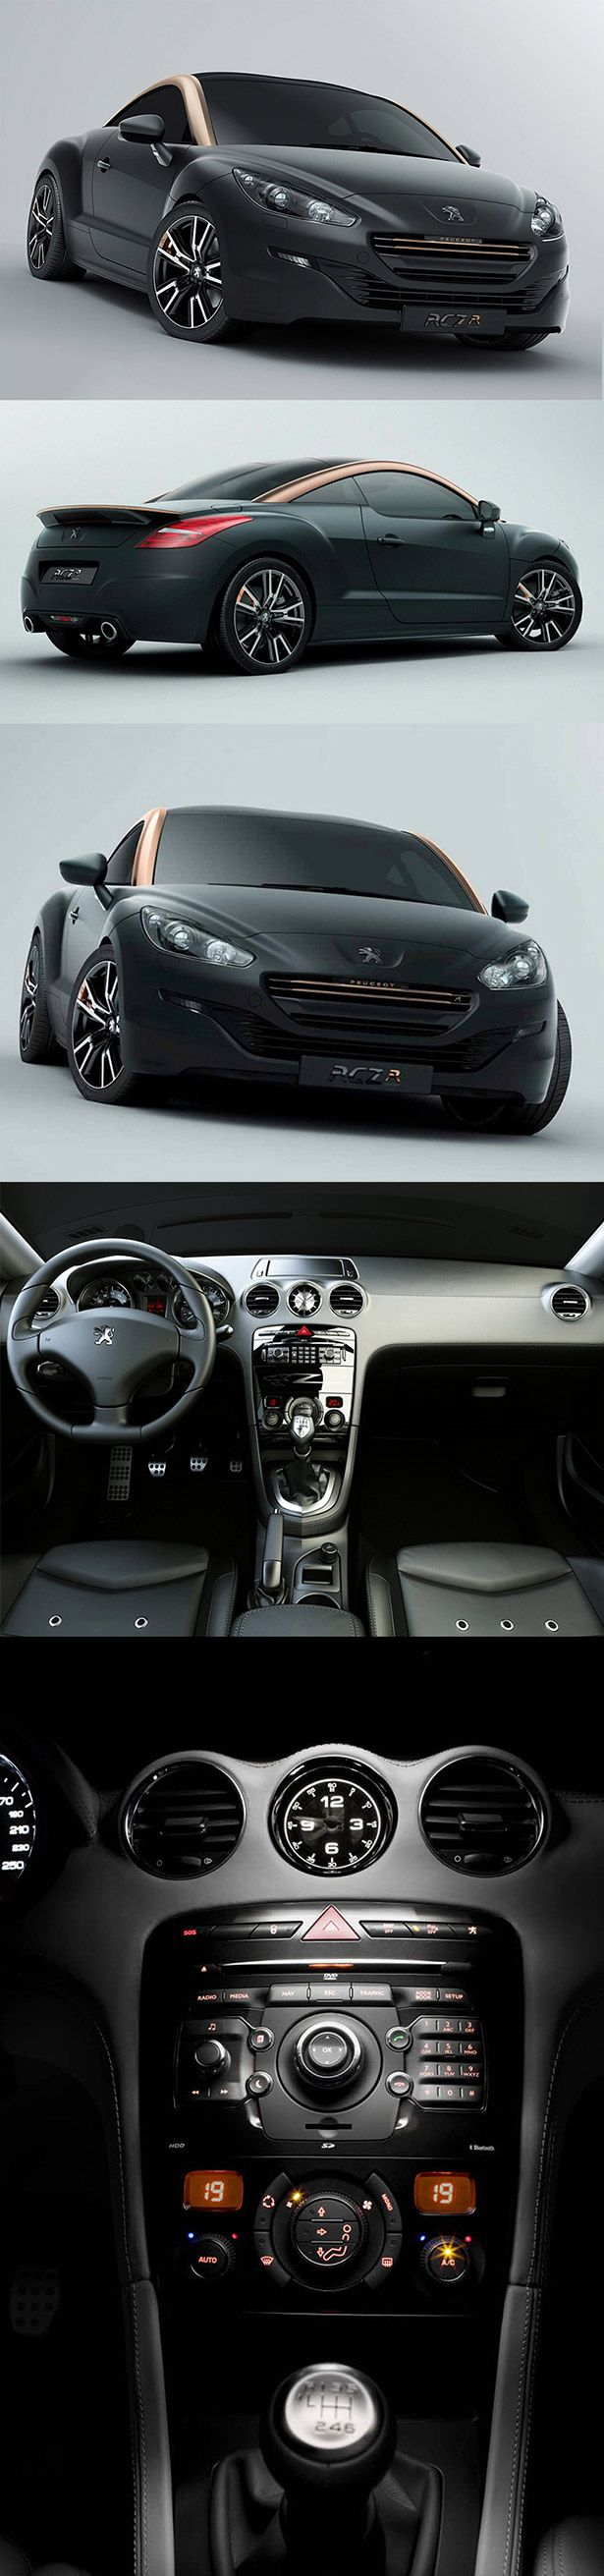 WOW! What a car! Such perfection, we love this colourscheme, what do you think of it? Like what you see? Book a test drive online today with Richard Hardie  http://www.richardhardie.co.uk/peugeot/new-cars/rcz